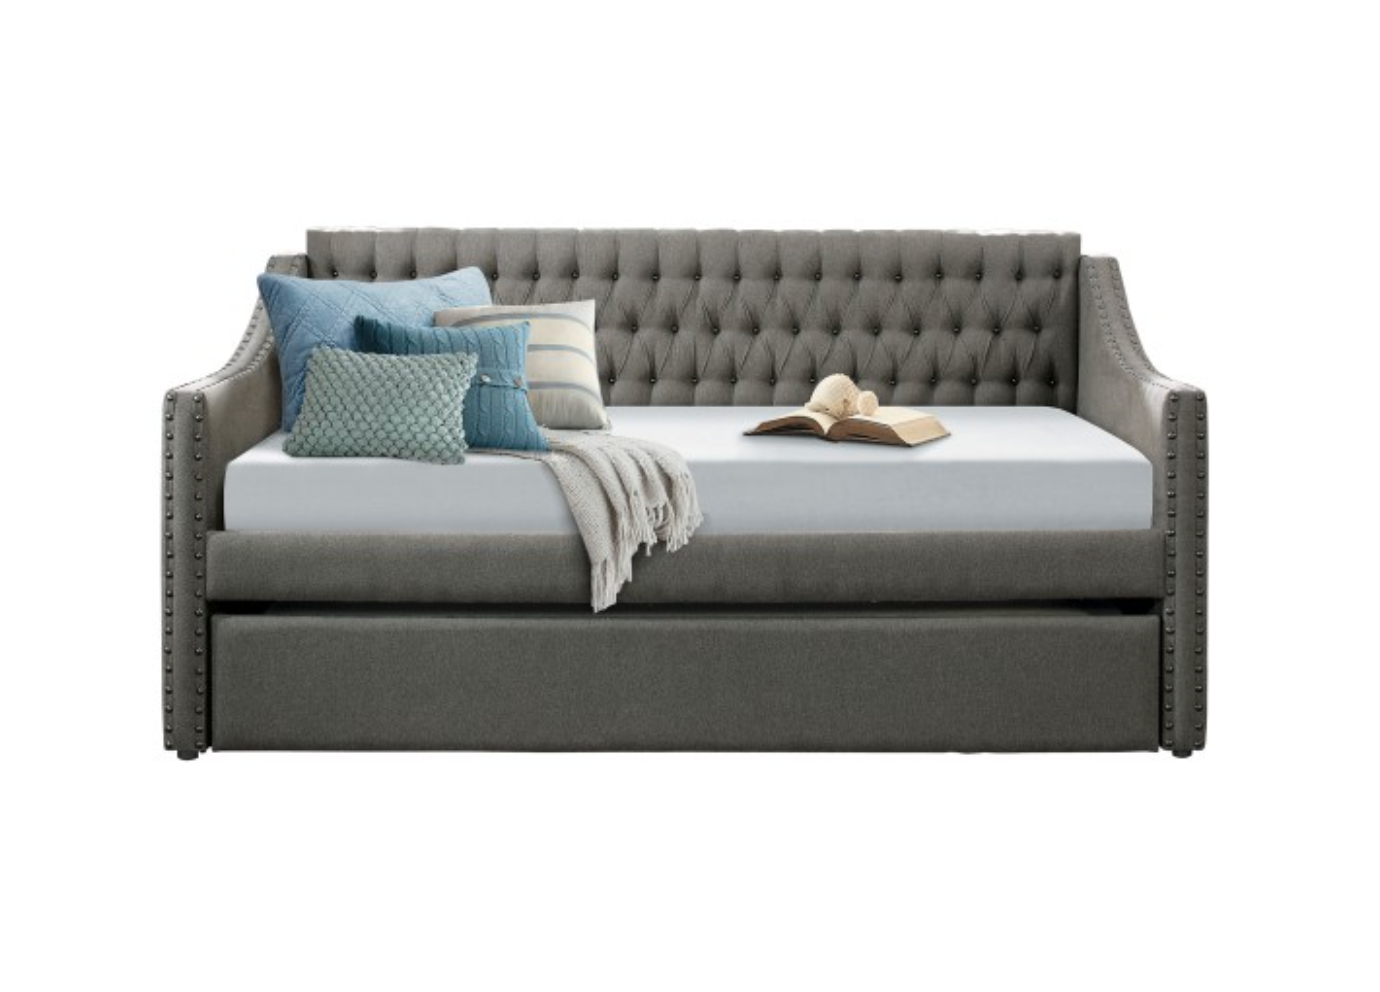 The Tulney Daybed